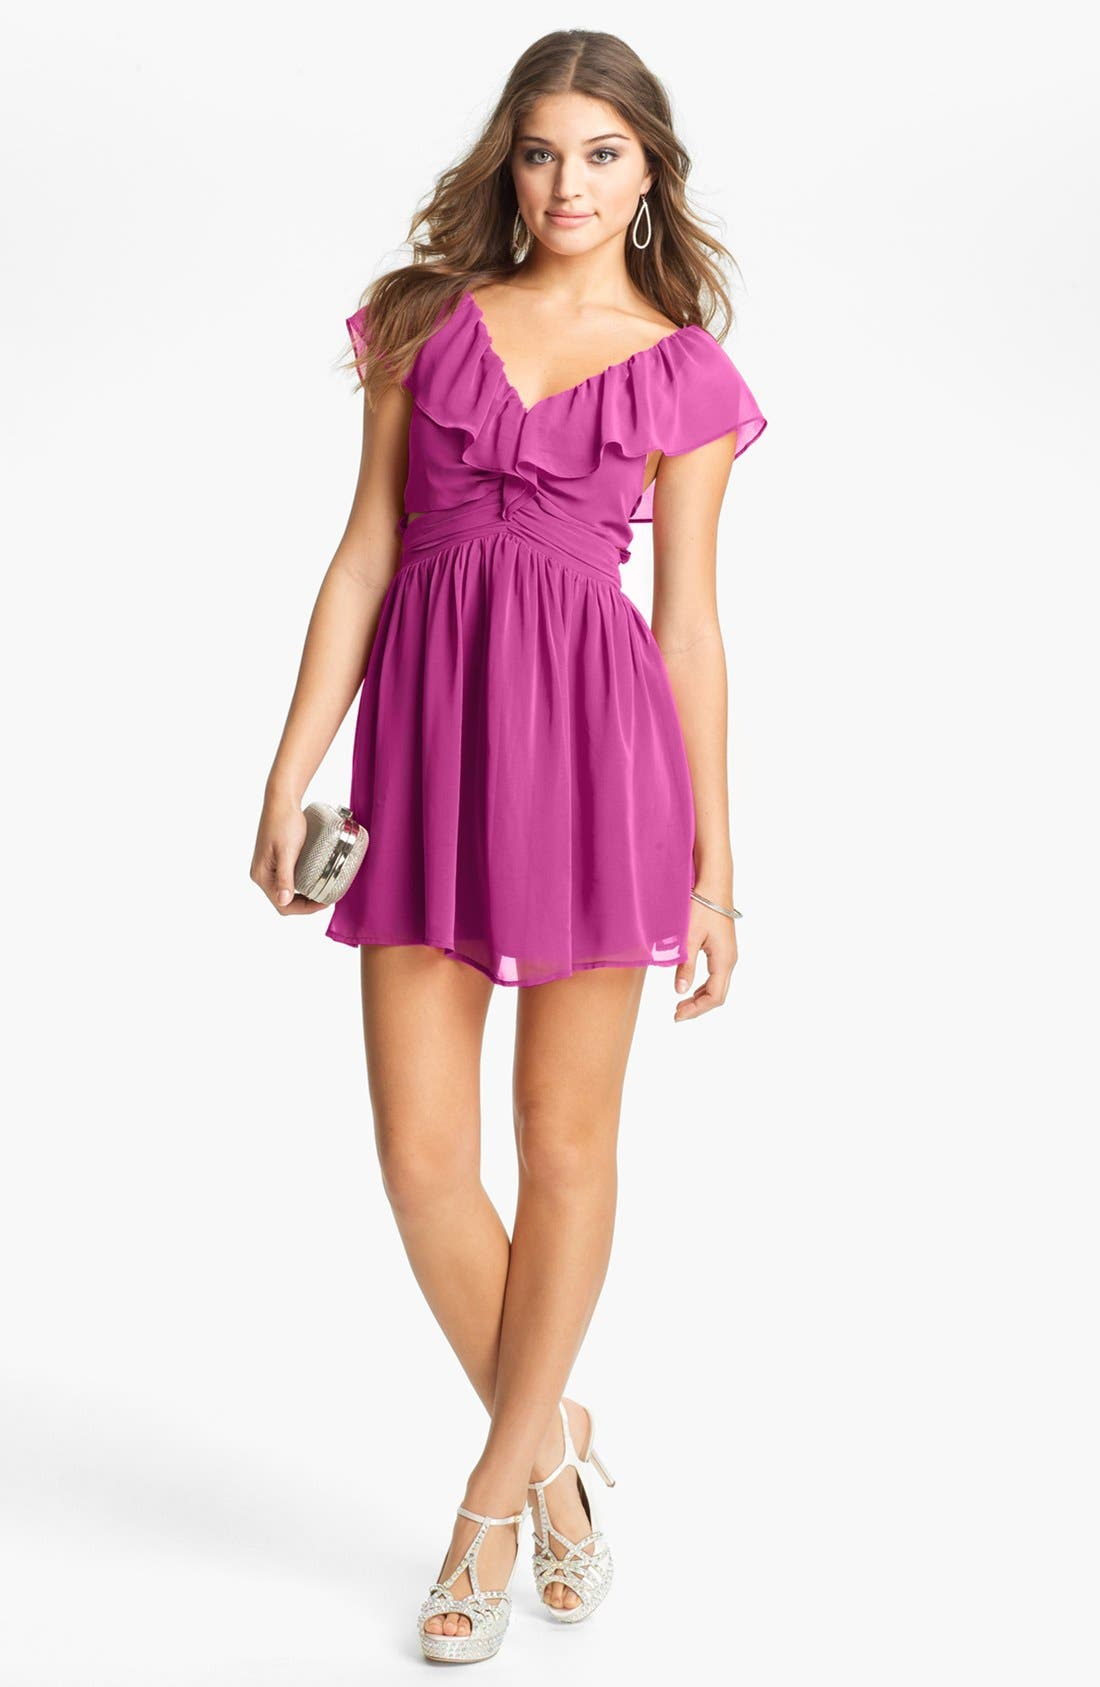 Alternate Image 1 Selected - Keepsake the Label 'Lost Without You' Ruffled Mini Dress